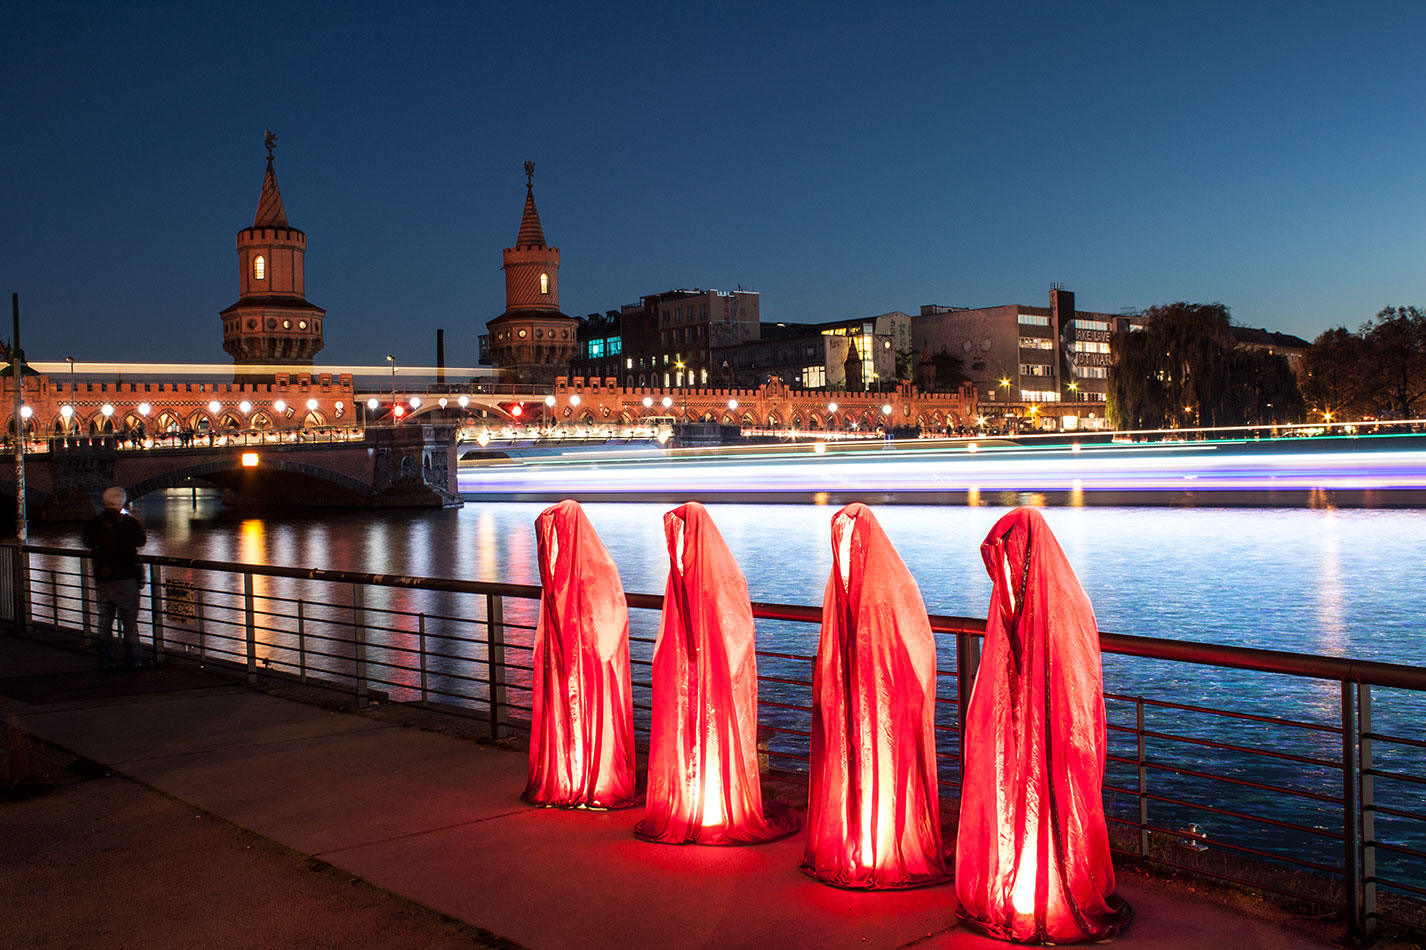 25-years-wallfall-berlin-germany-east-side-gallery-contemporary-fine-art-show-arts-design-guardians-of-time-manfred-kili-kielnhofer-4479